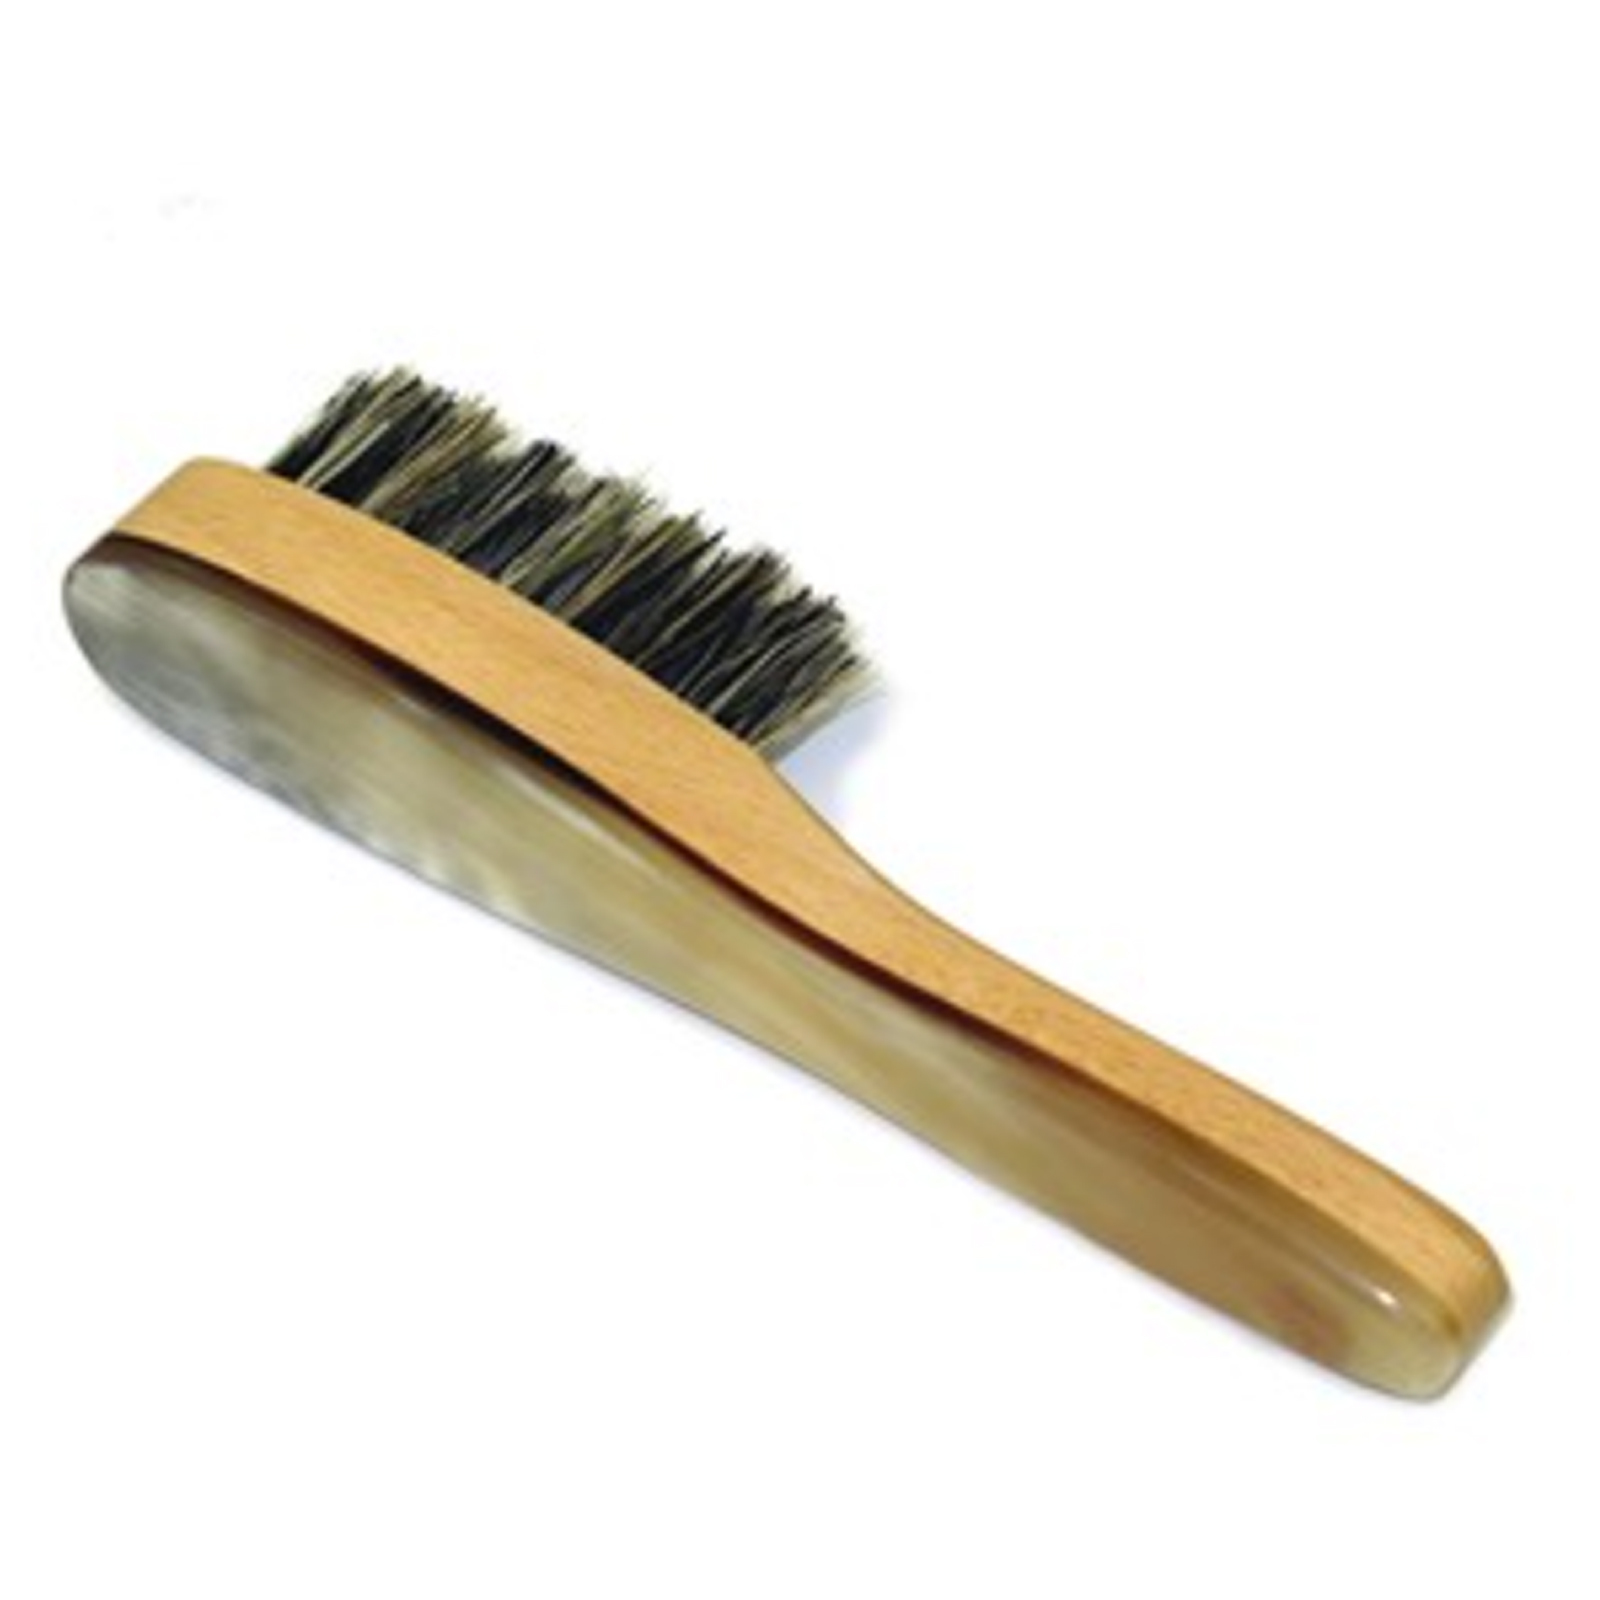 Polished Ox Horn Backed Hardwood Beard Brush by Abbeyhorn